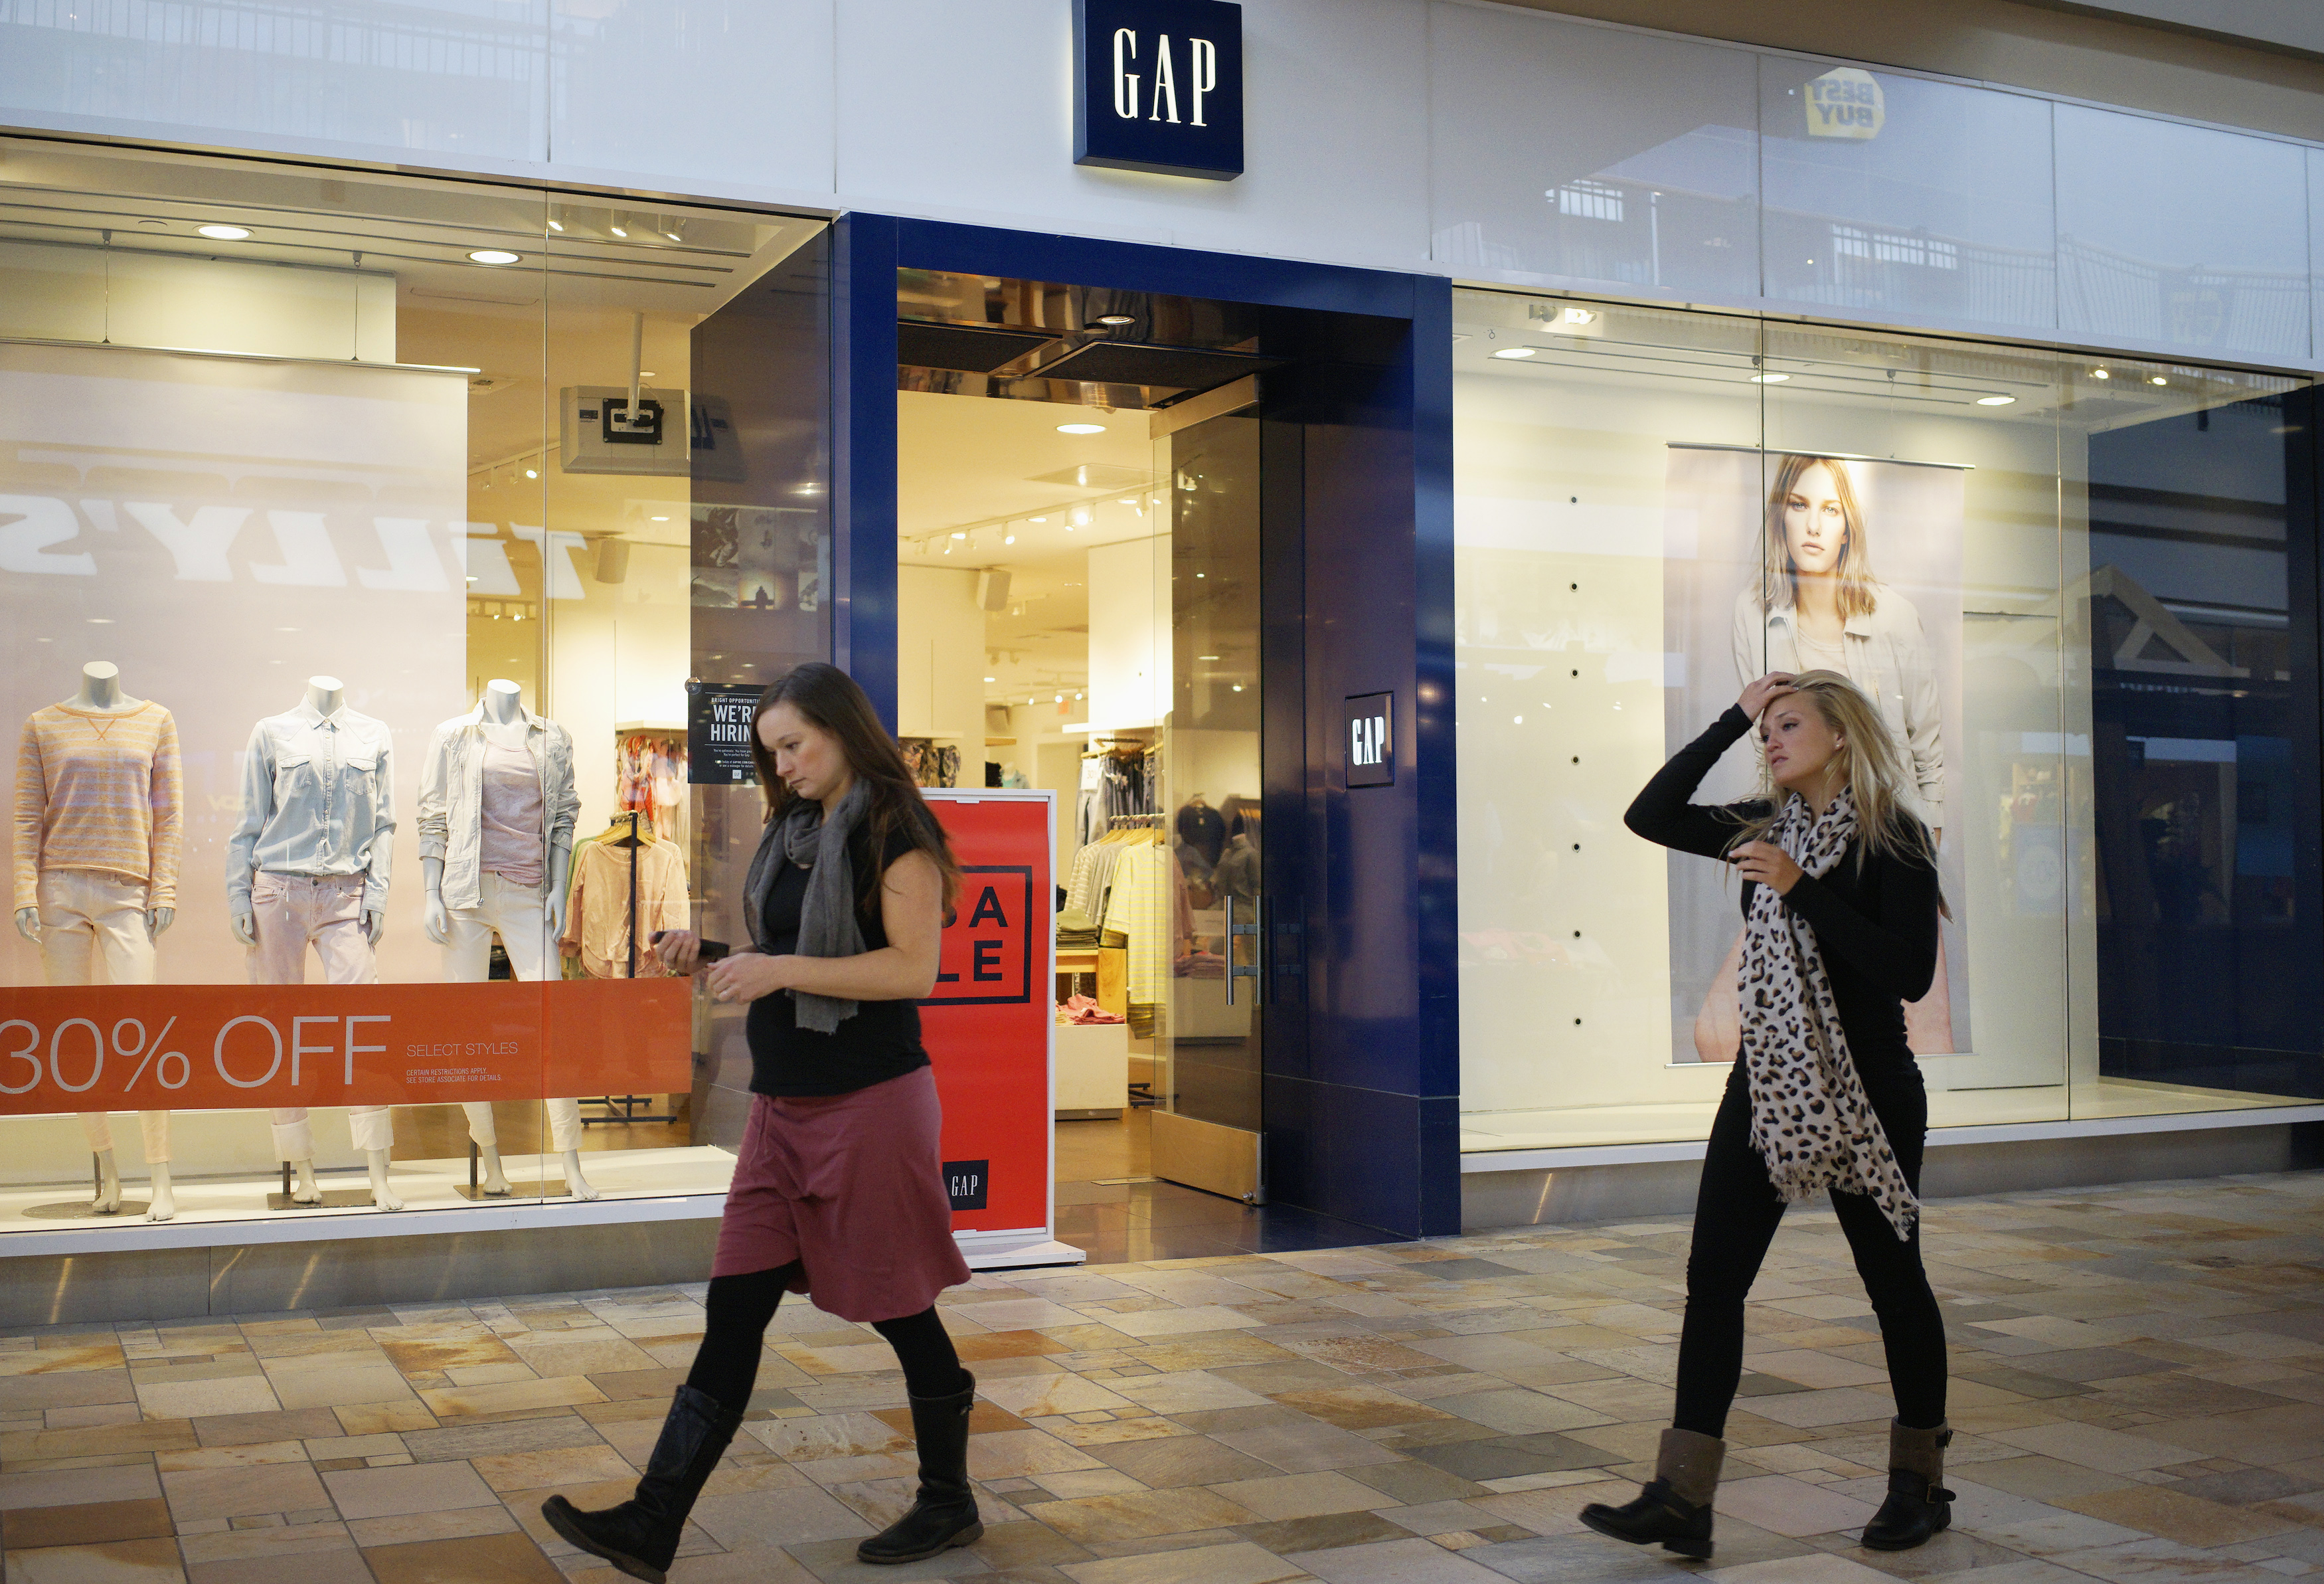 Passers-by walk next to a Gap store in Broomfield, Colorado